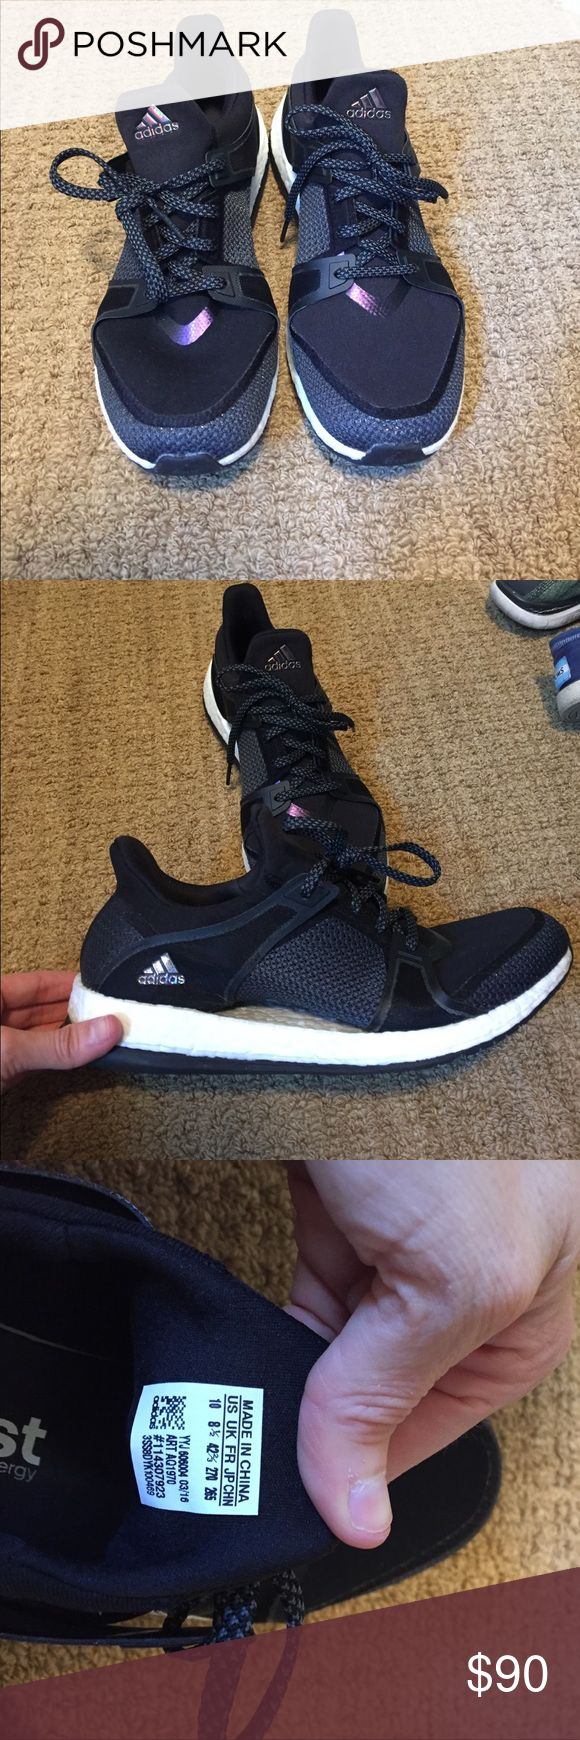 Adidas Pure boost X Sneakers Adidas Pure boost X Sneakers in black; perfect comditon; worn once. Adidas Shoes Sneakers